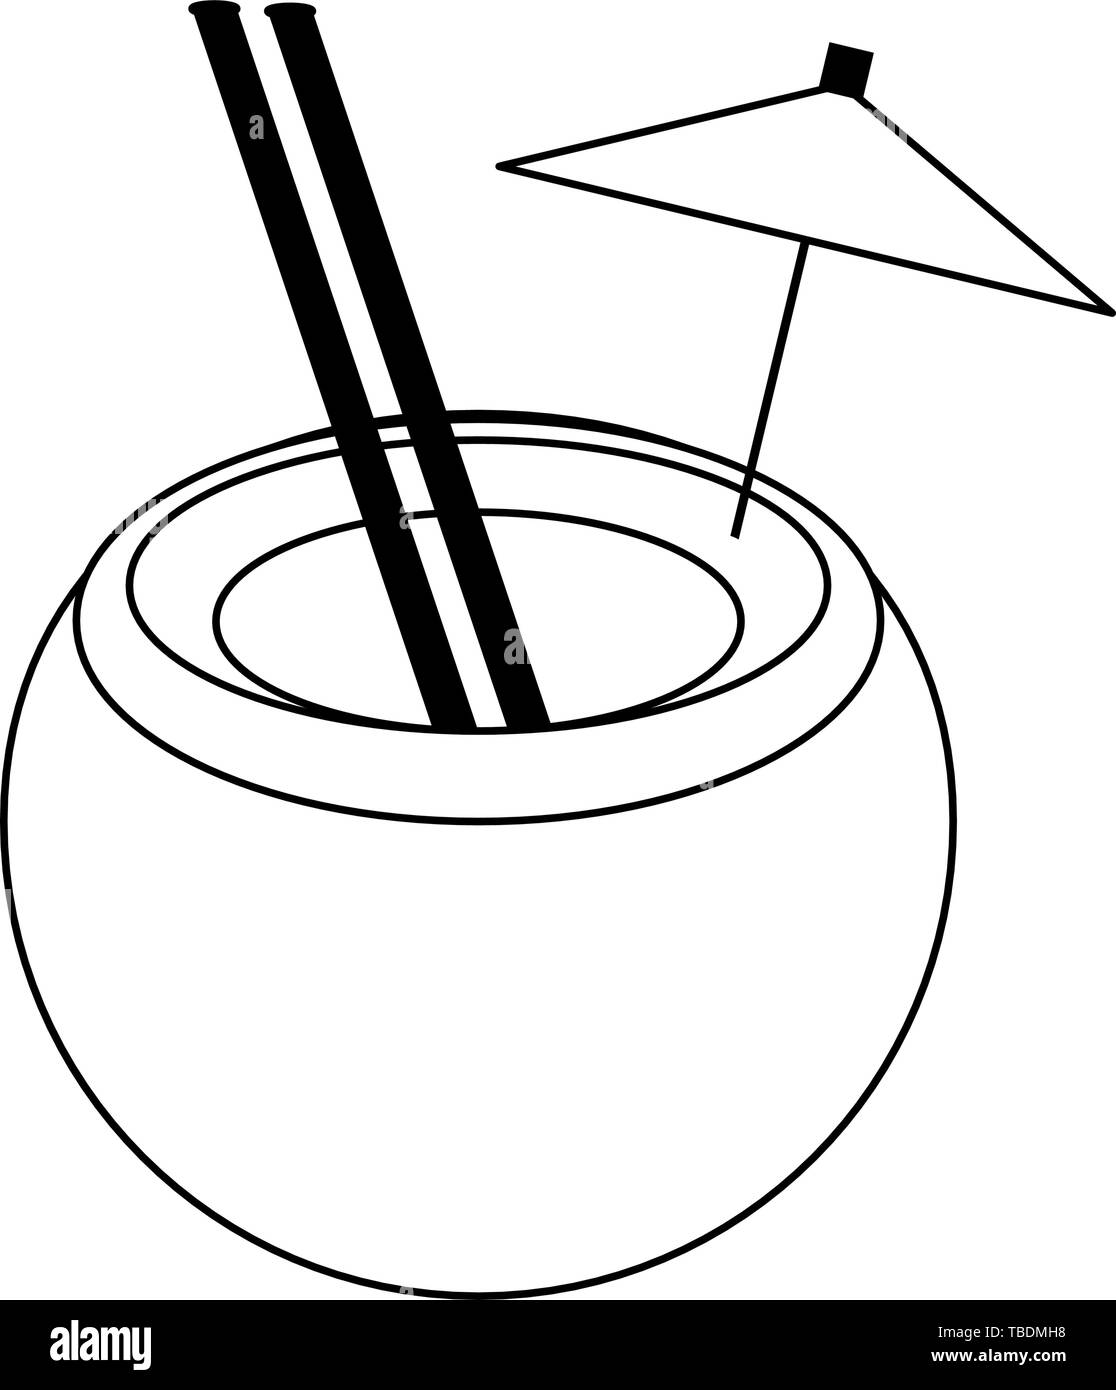 Coconut Cocktail With Straw And Umbrella Cartoon In Black And White Stock Vector Image Art Alamy